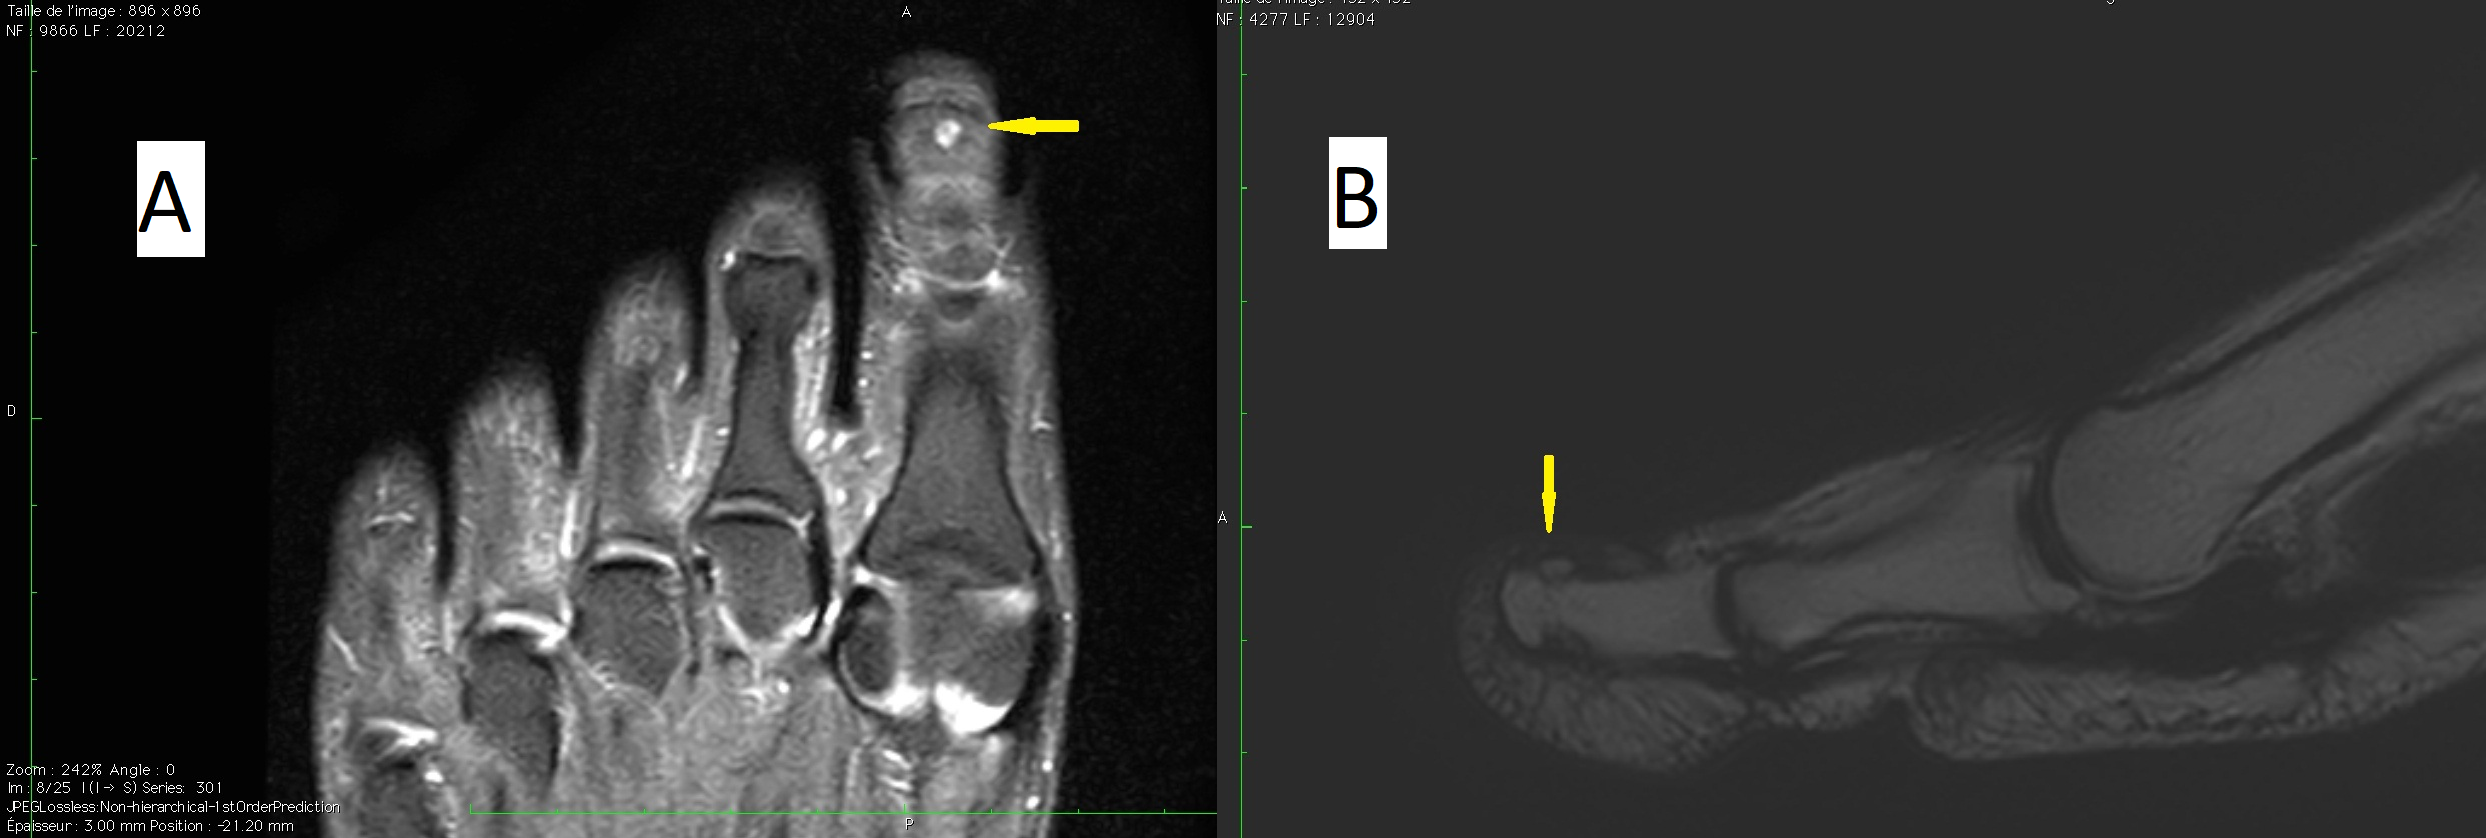 Osteoid Osteoma of the Distal Phalanx of the Hallux figure 2